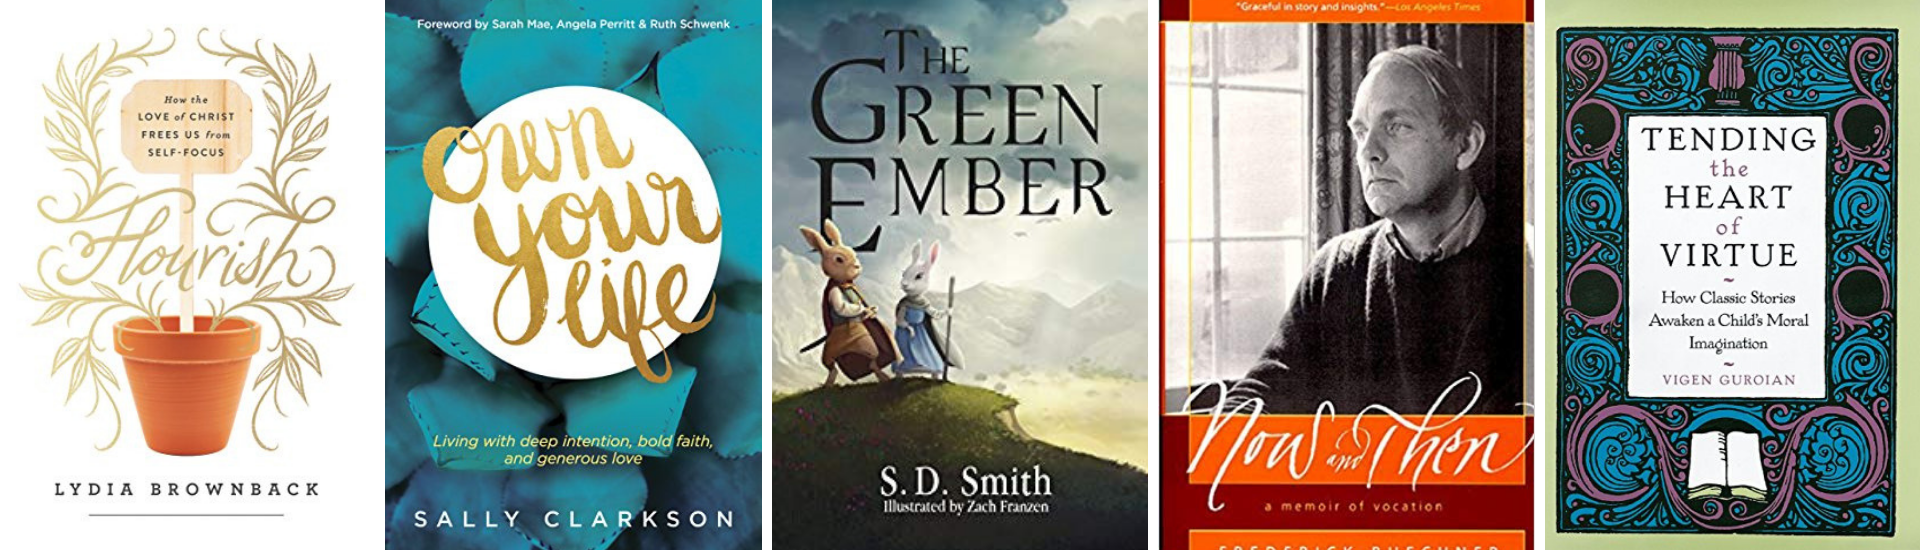 5 book cover images